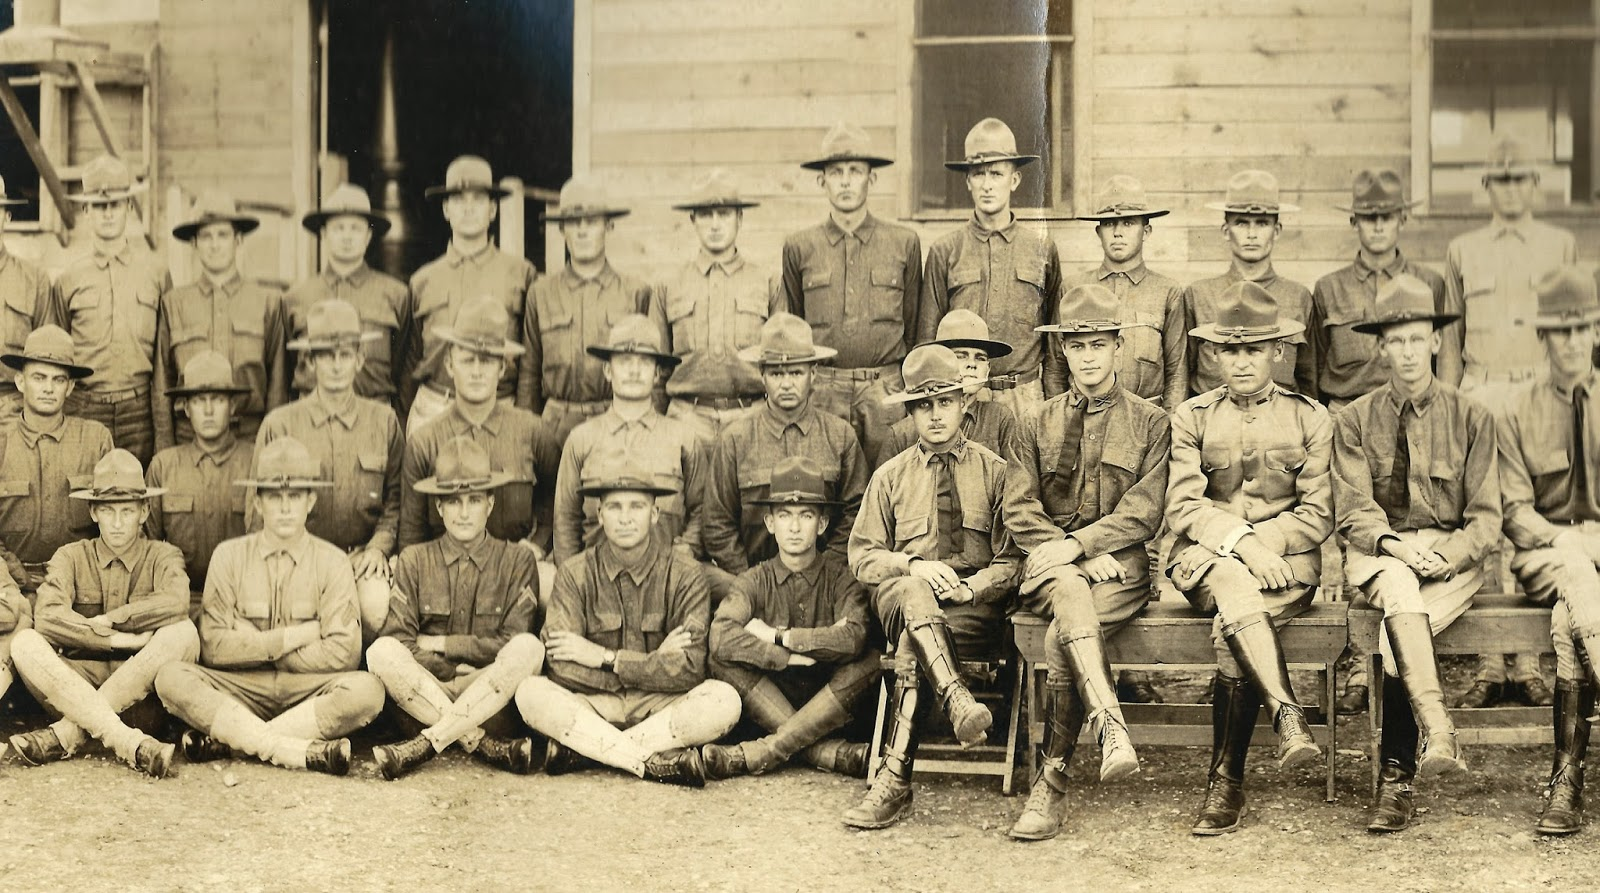 the story of the 90th division american expeditionary forces